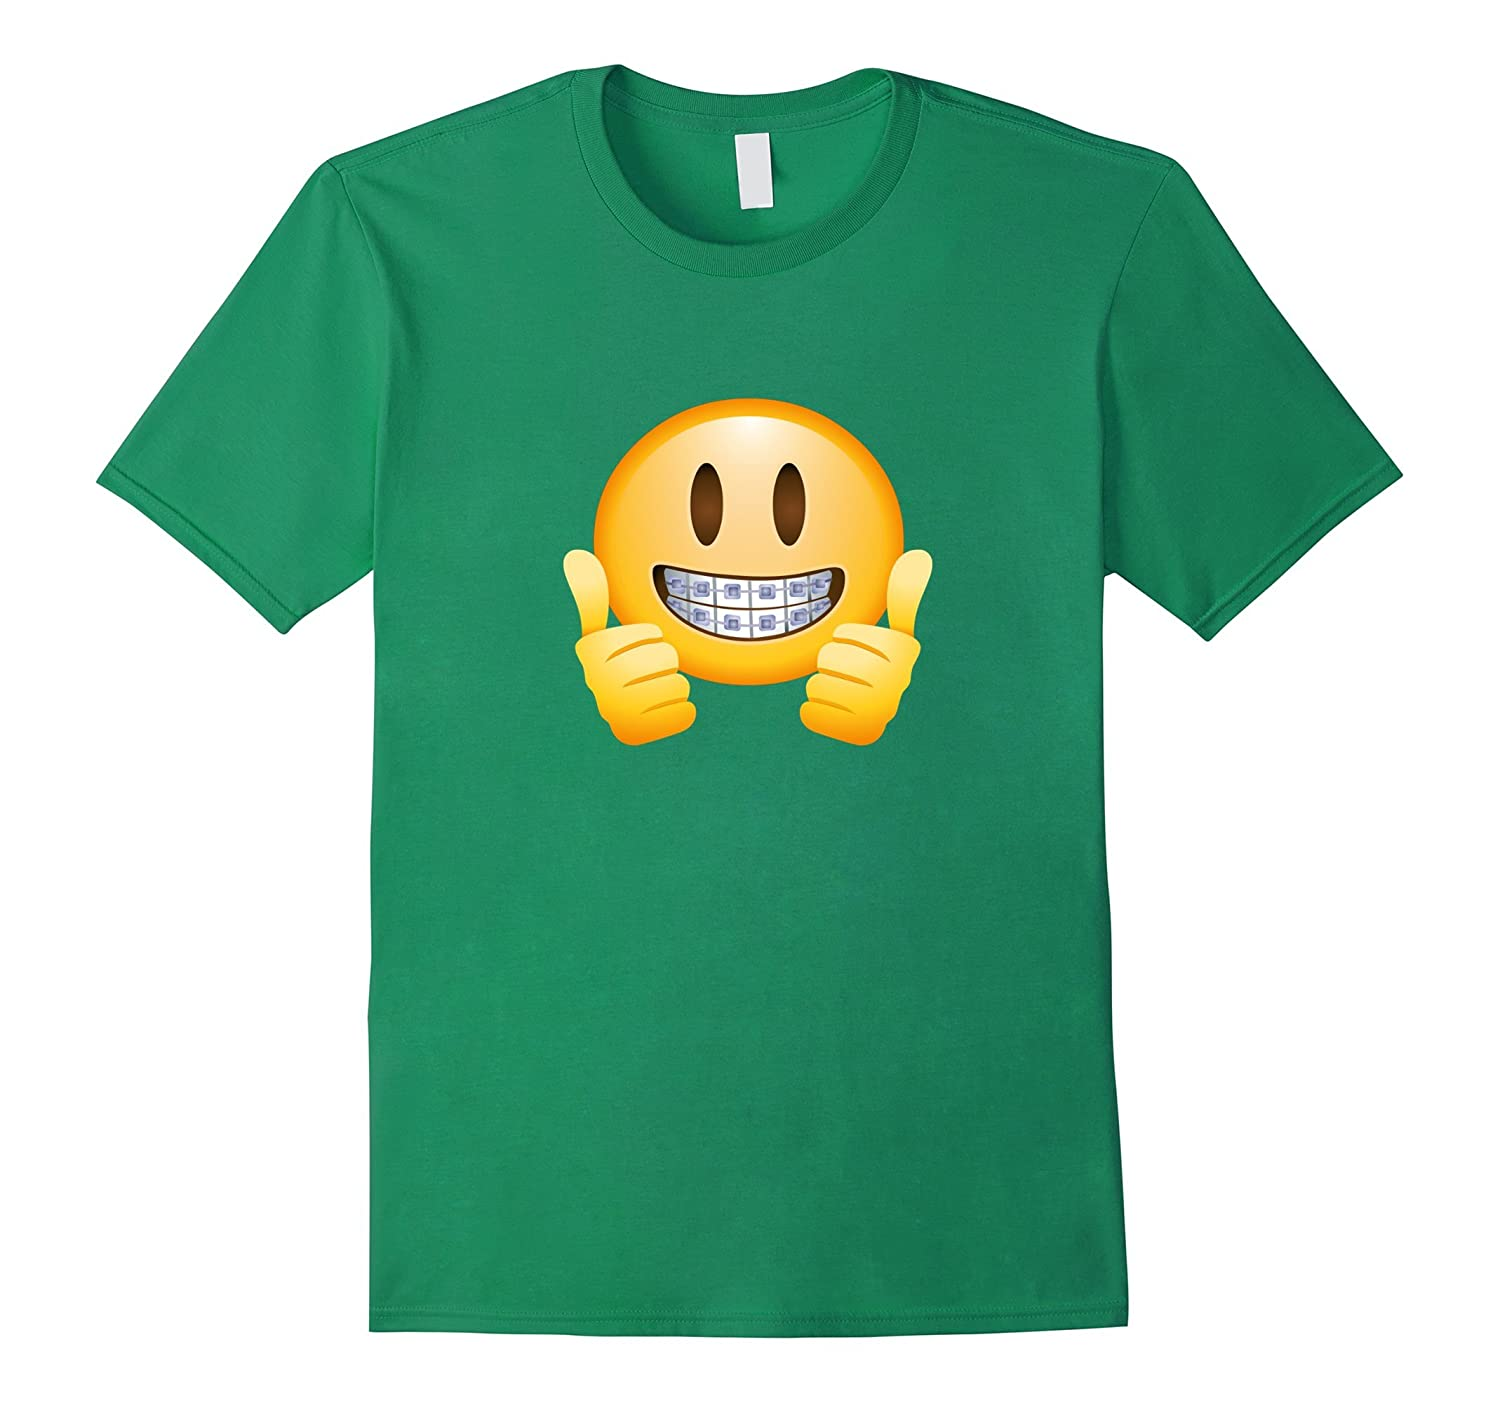 Braces Emoji T-Shirt Thumbs Up Smile Face Happy Mouth Teeth-ANZ ...